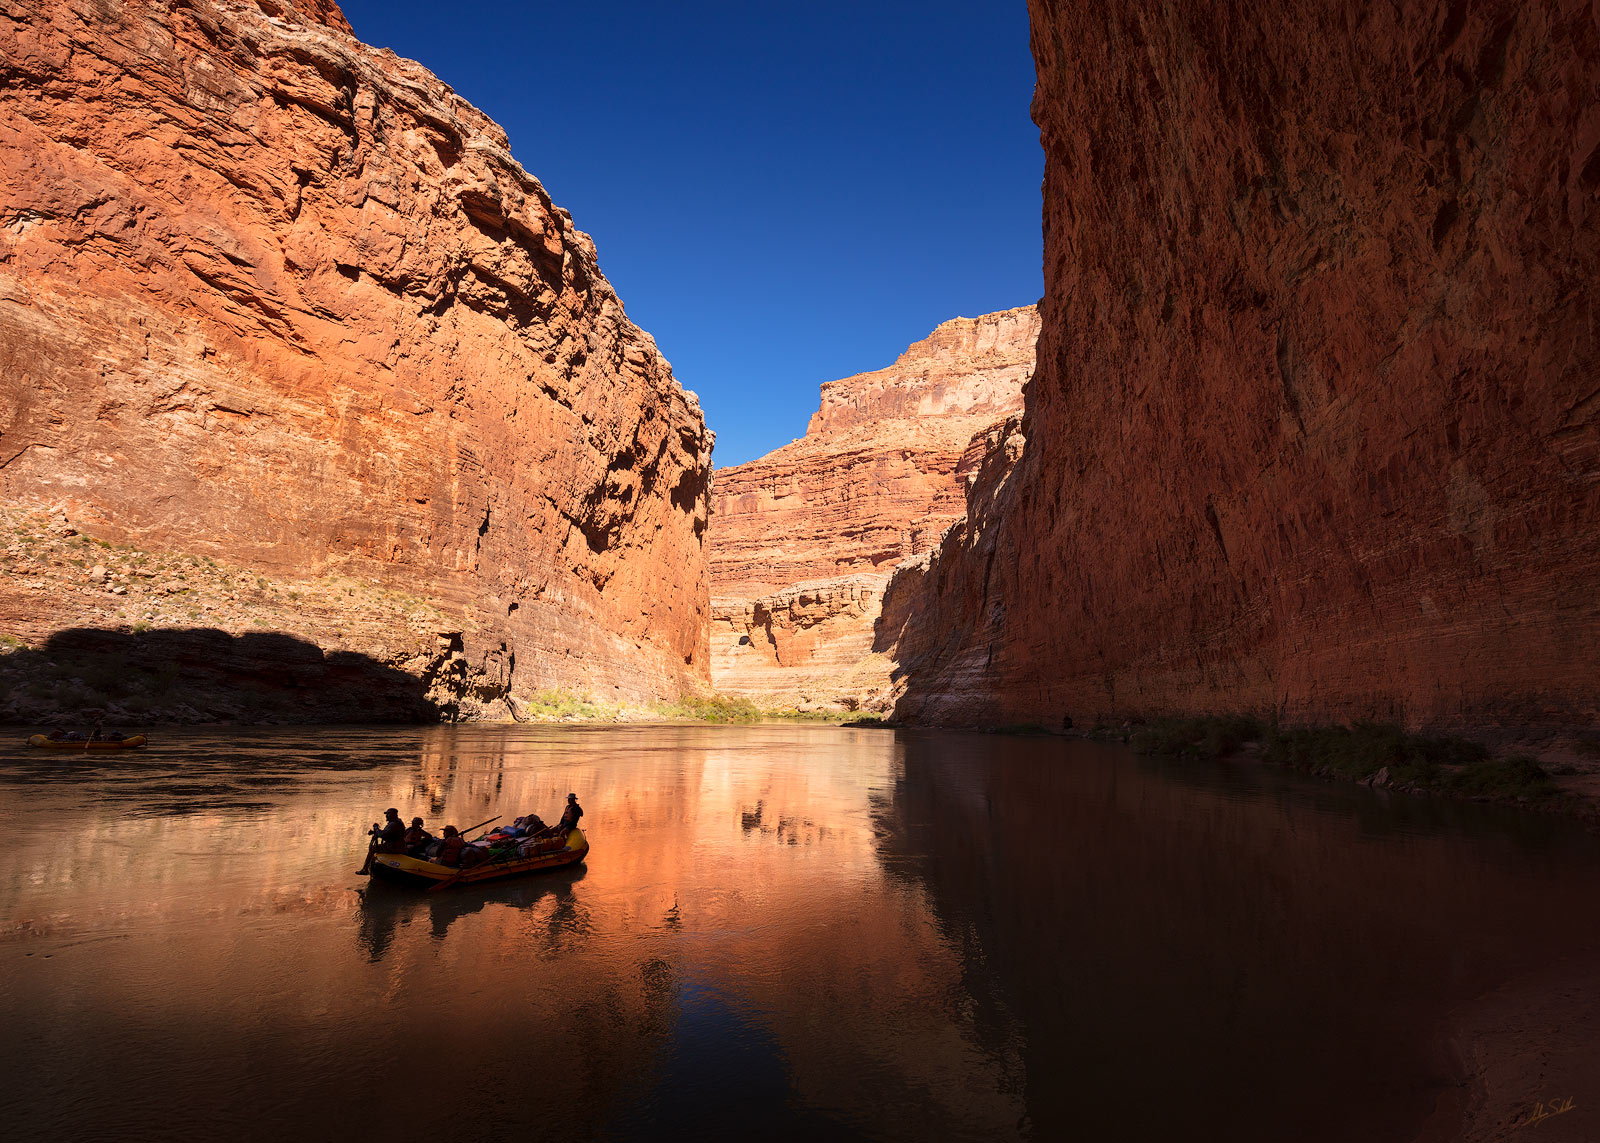 AZ, Arizona, Below the Rim, Colorado River, Expedition, Float, Grand Canyon, Grand Canyon National Park, Marble Canyon, National Park, Peaceful, Raft, Rafting, Redwall, Relaxing, River Trip, calm, photo